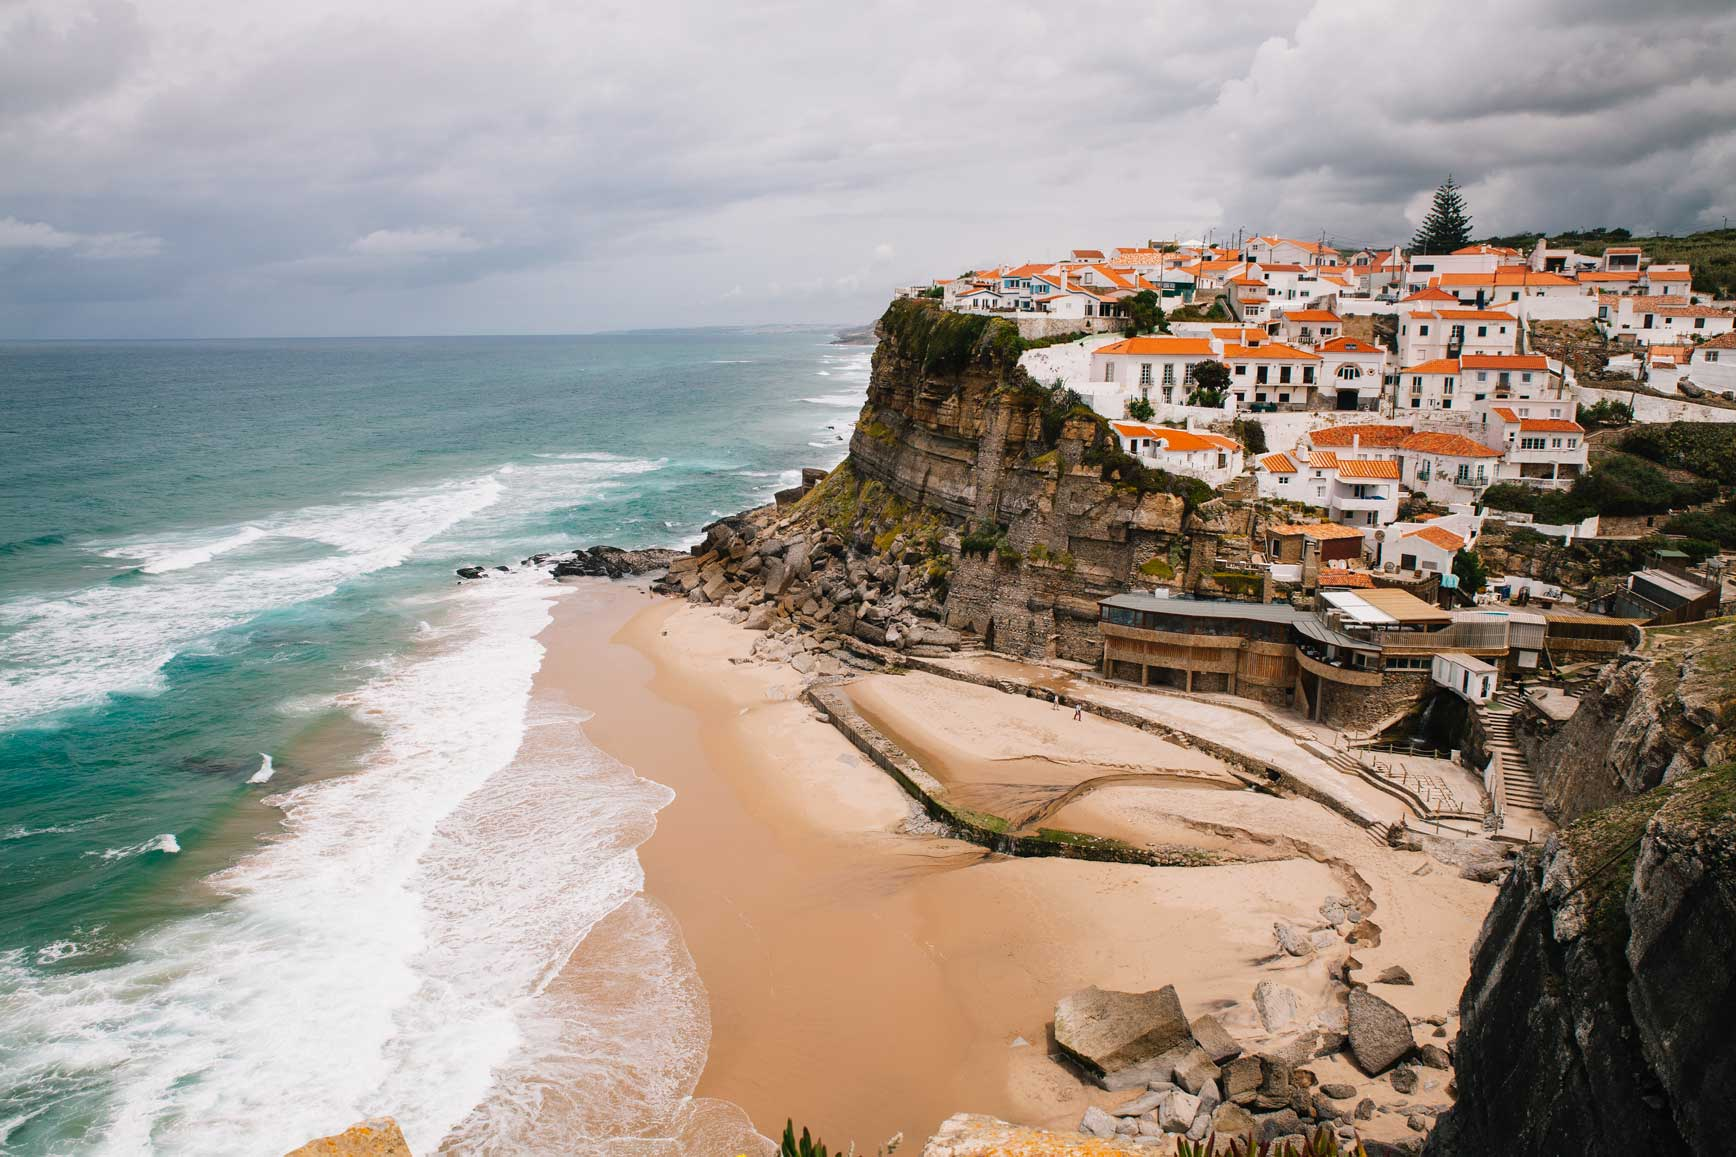 Pueblos con encanto en Portugal - Azenhas do Mar